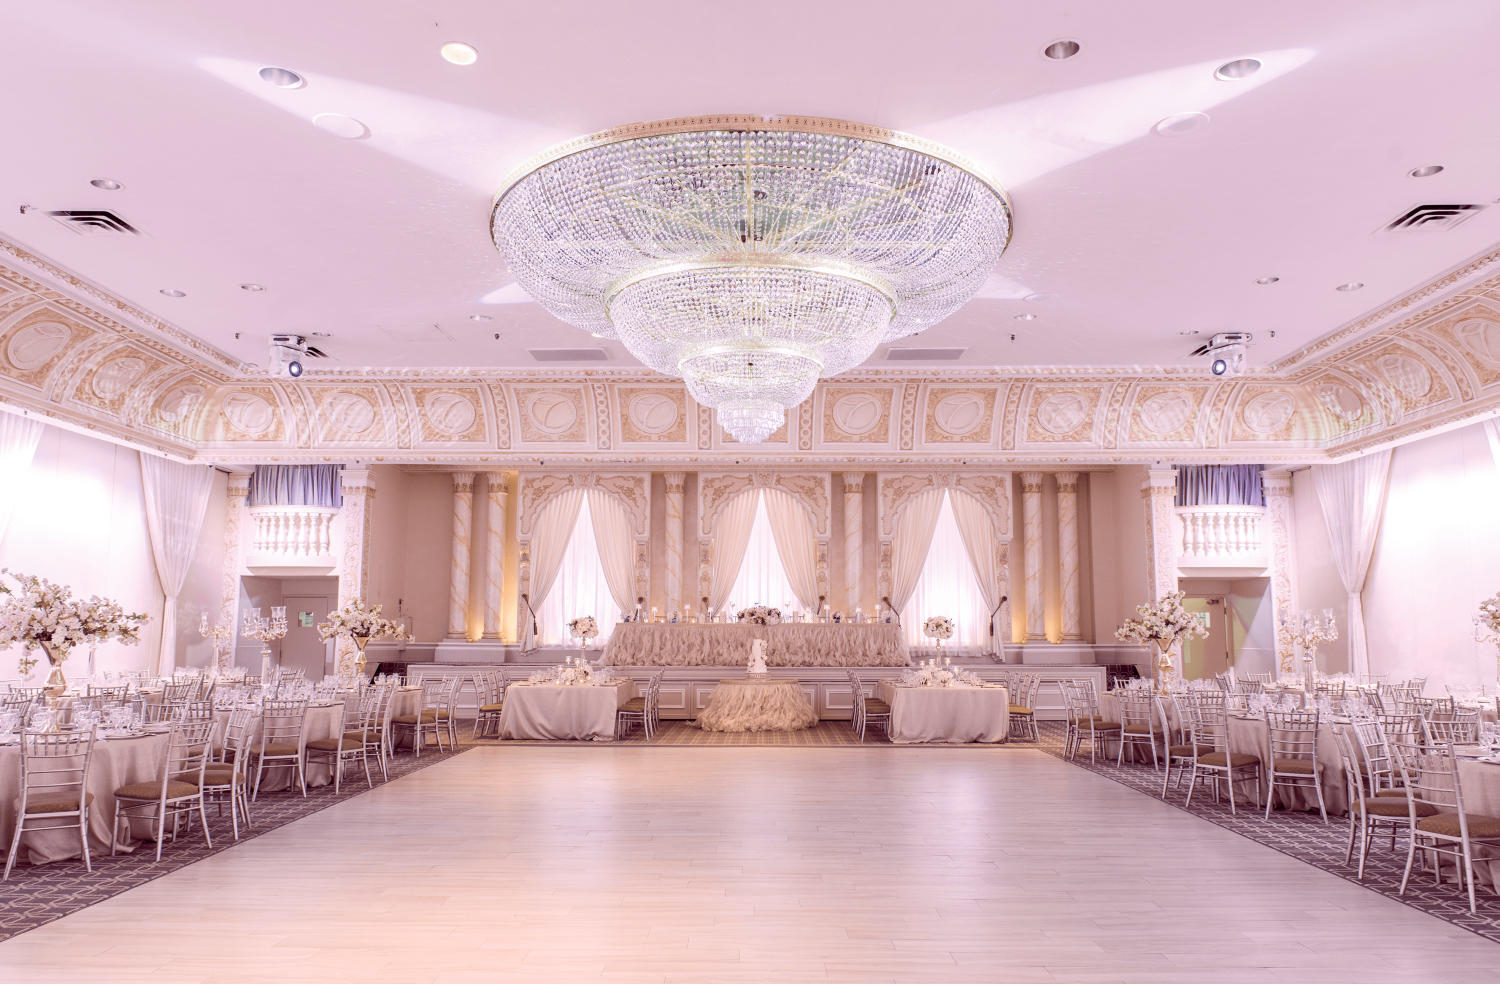 A wide shot of a ballroom with a dance floor and a chandelier.